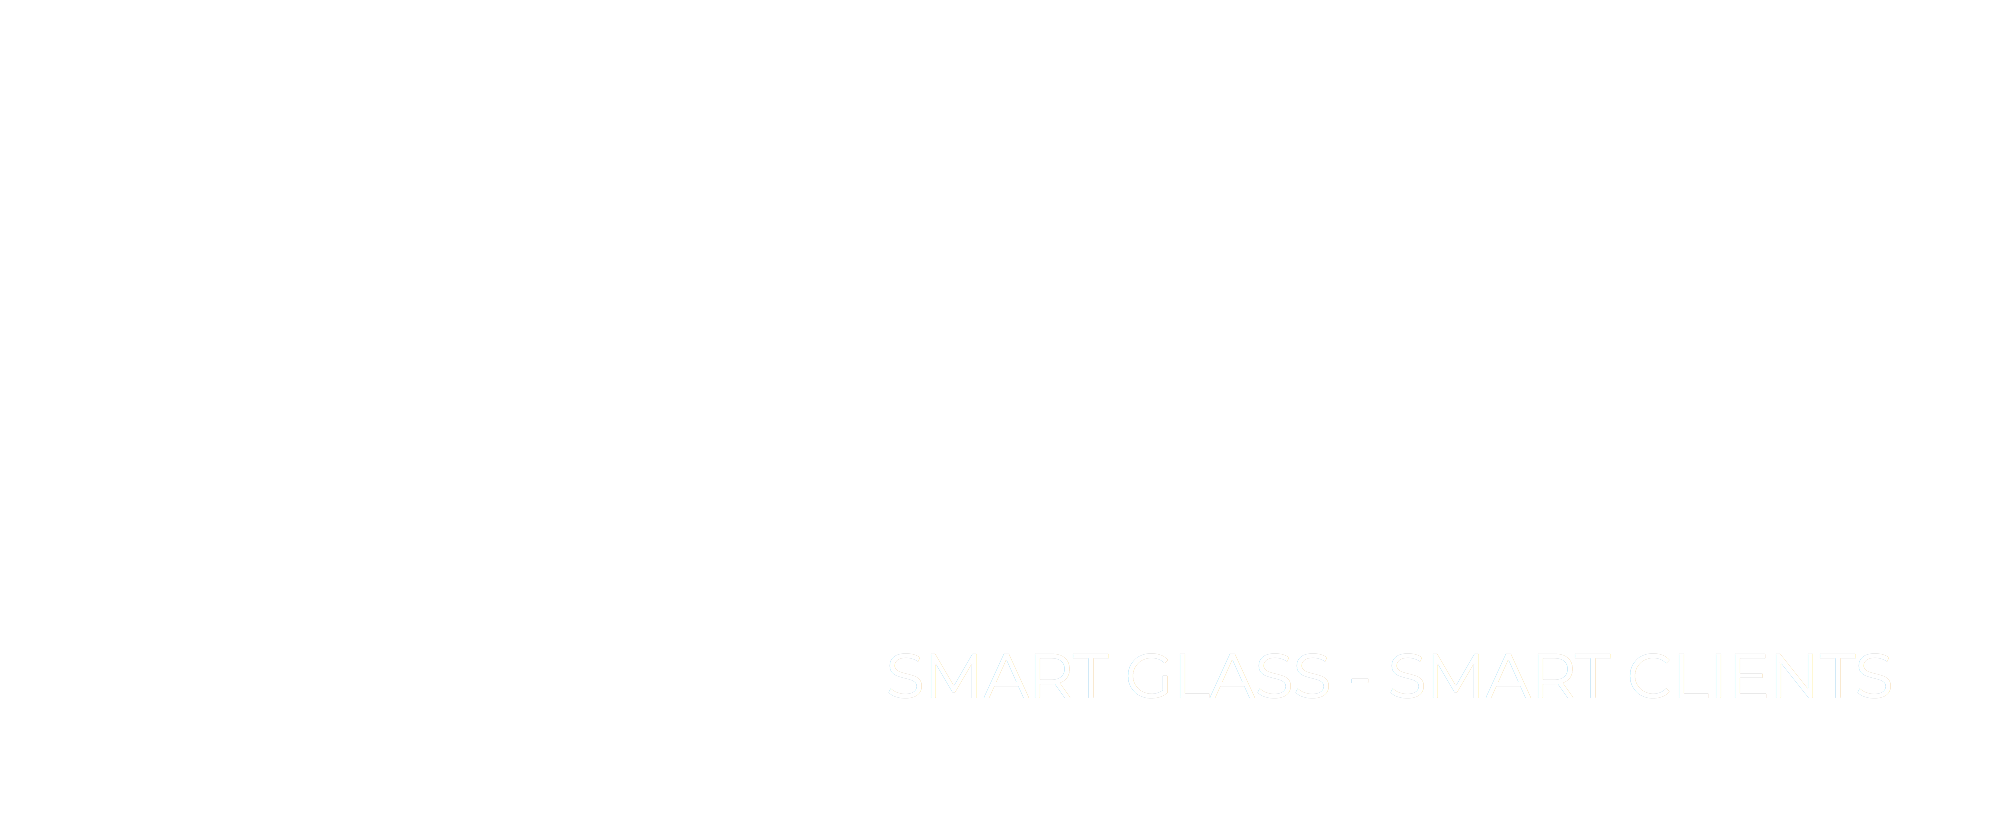 NEW LOW PRICES-logo-white.png